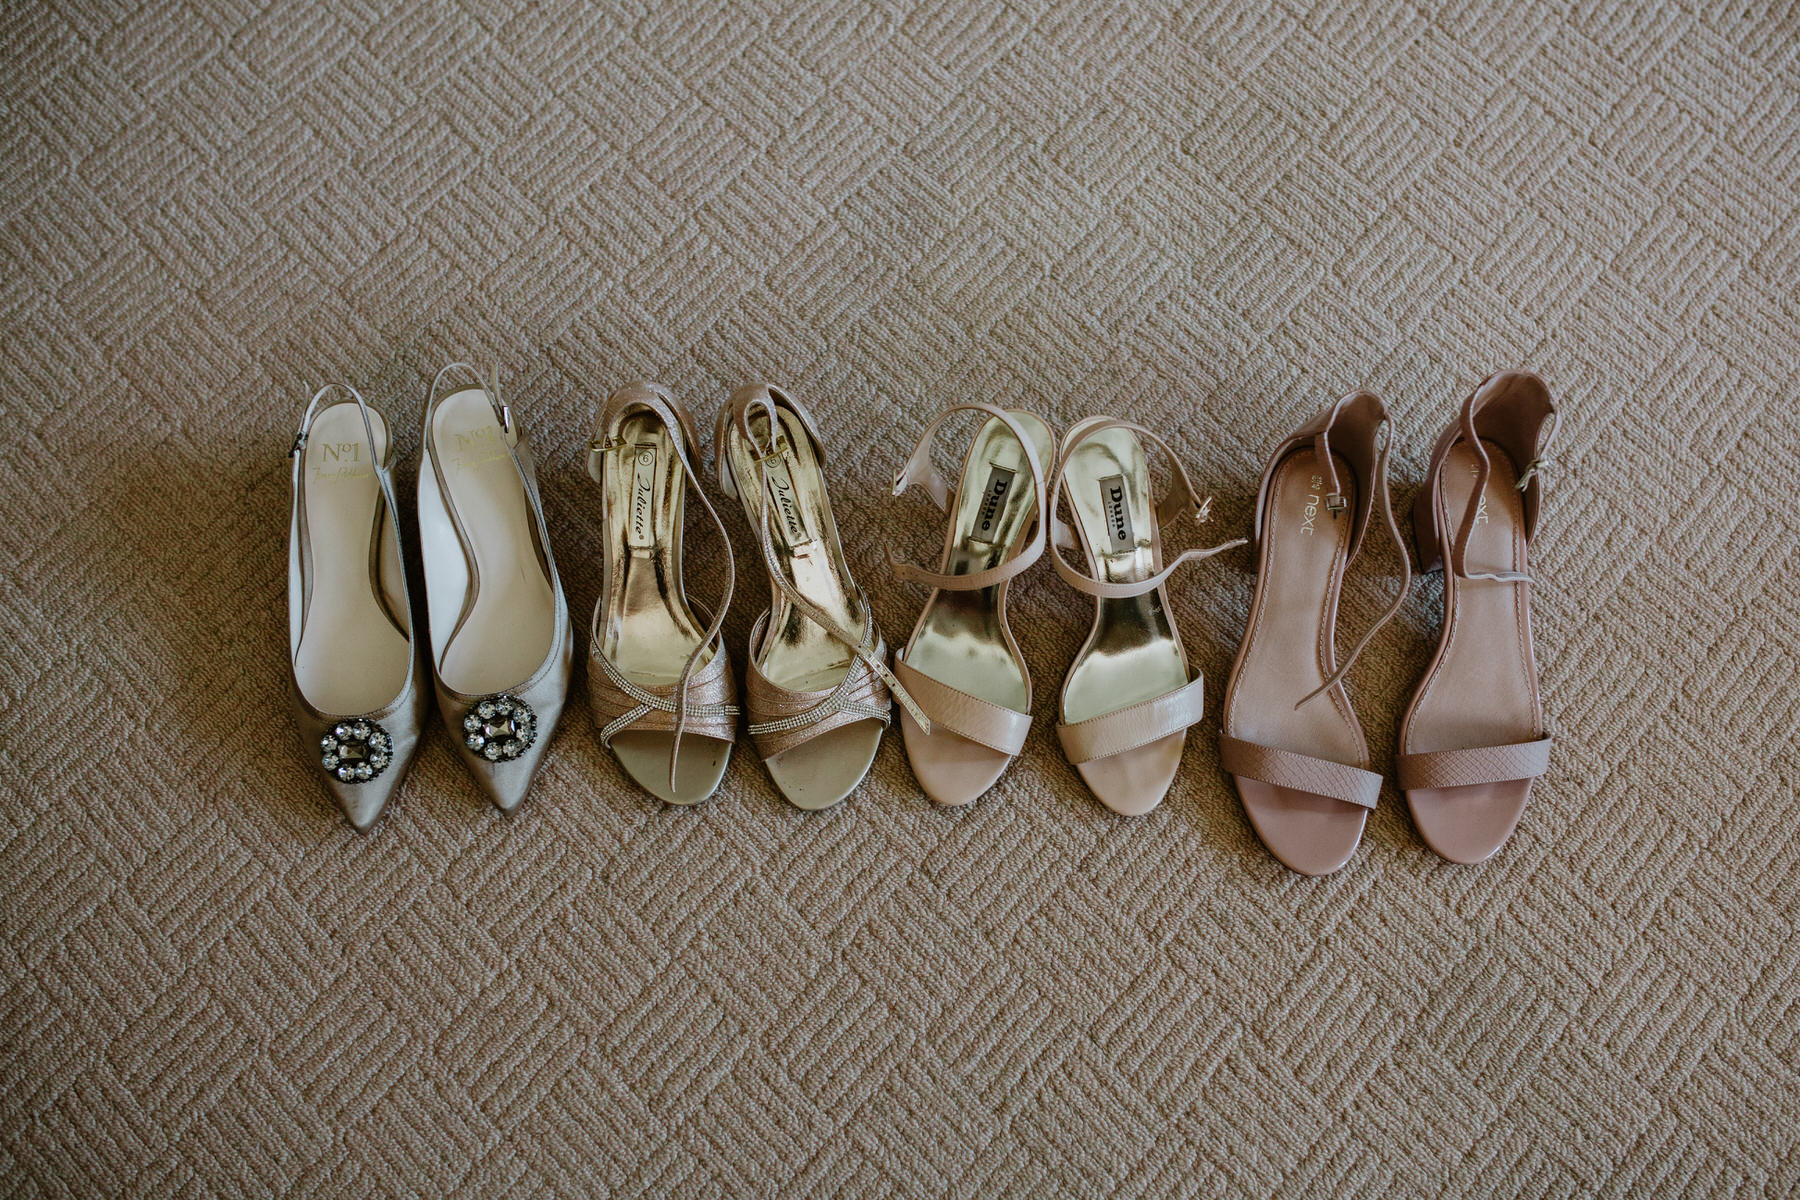 25 bridesmaids shoes reportage wedding photographer.jpg